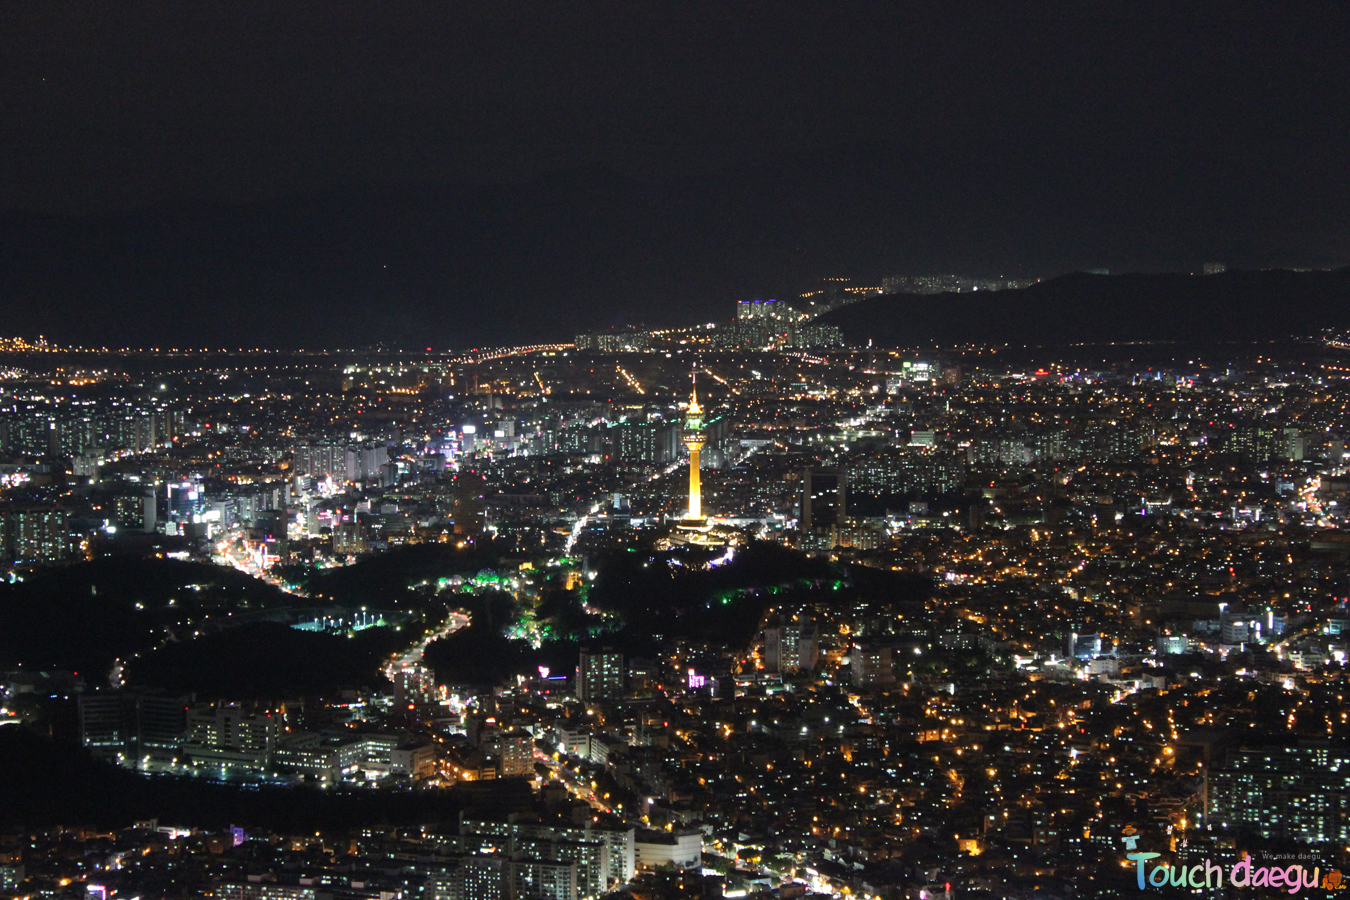 The night view of Daegu